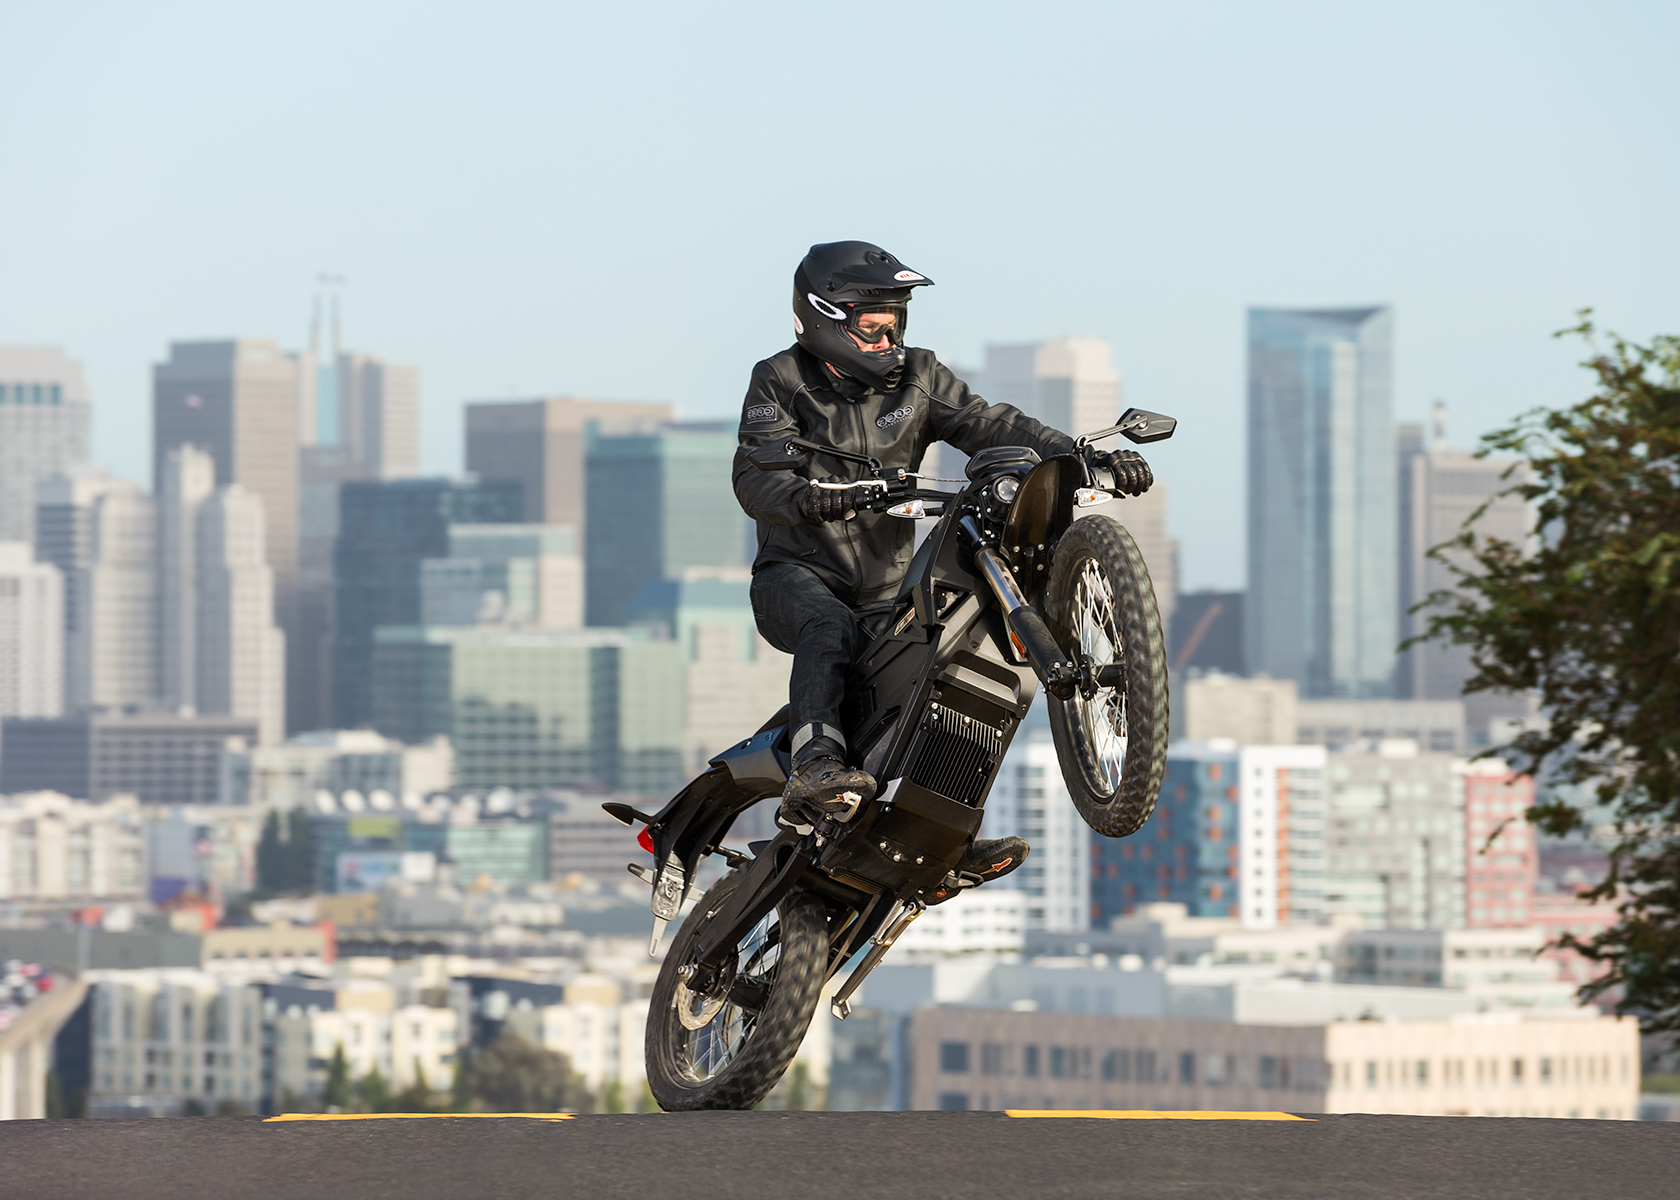 2014 Zero FX Electric Motorcycle: